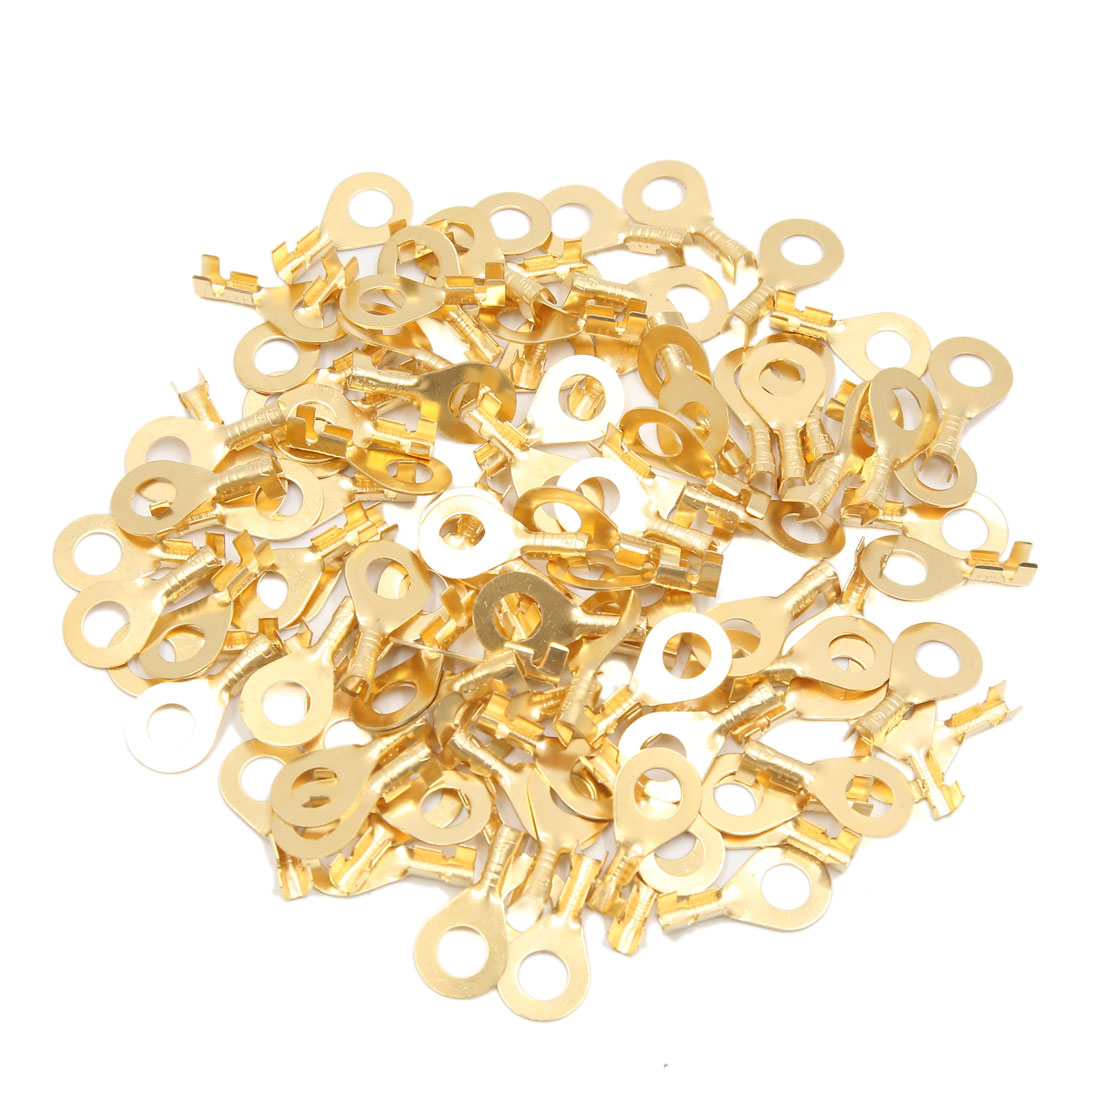 100pcs Gold Tone 7mm Dia Ring Electrical Wiring Connector Terminal for Car